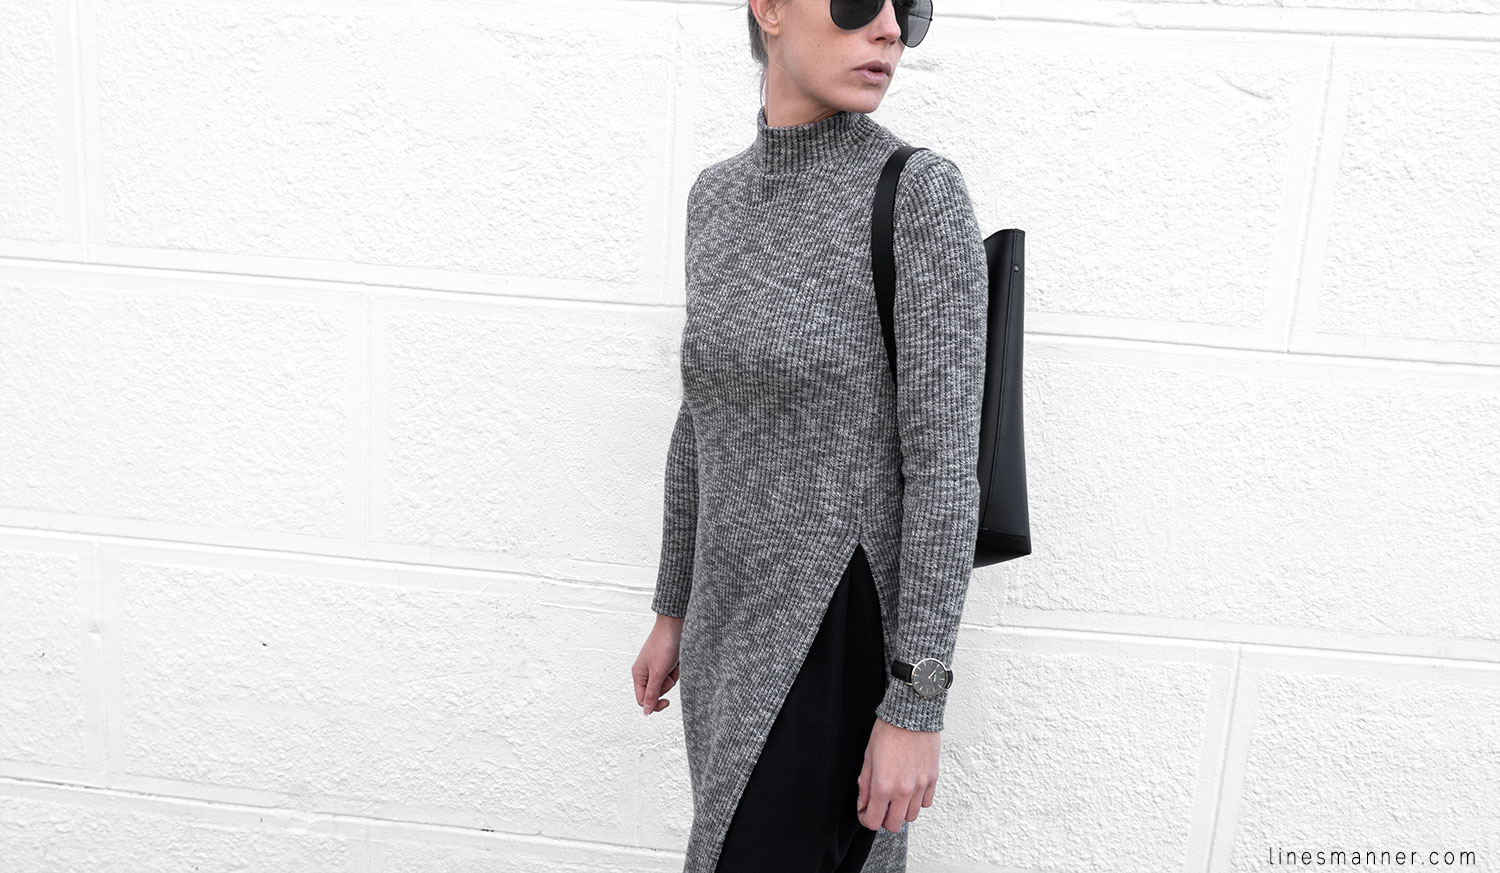 Lines-Manner-Timeless-Comfort-Monochrome-Trend-Minimal-Textures-Fall-Details-Simplicity-Modern-Essential-Outfit-3